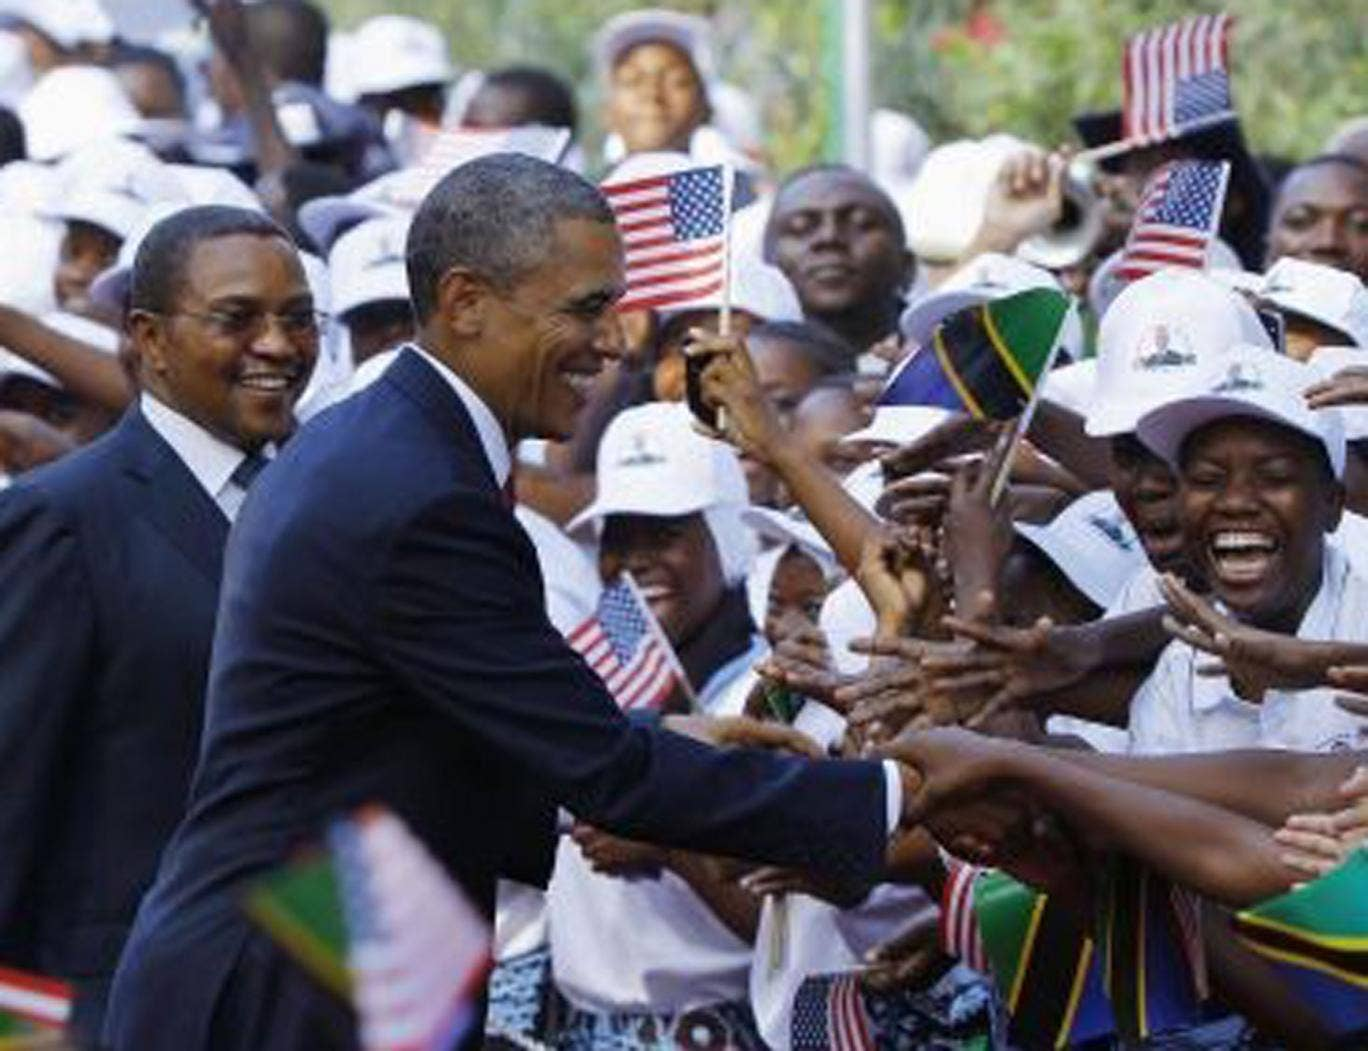 Barack Obama and Tanzania's President Jakaya Kikwete, left, at a welcoming ceremony in Dar Es Salaam